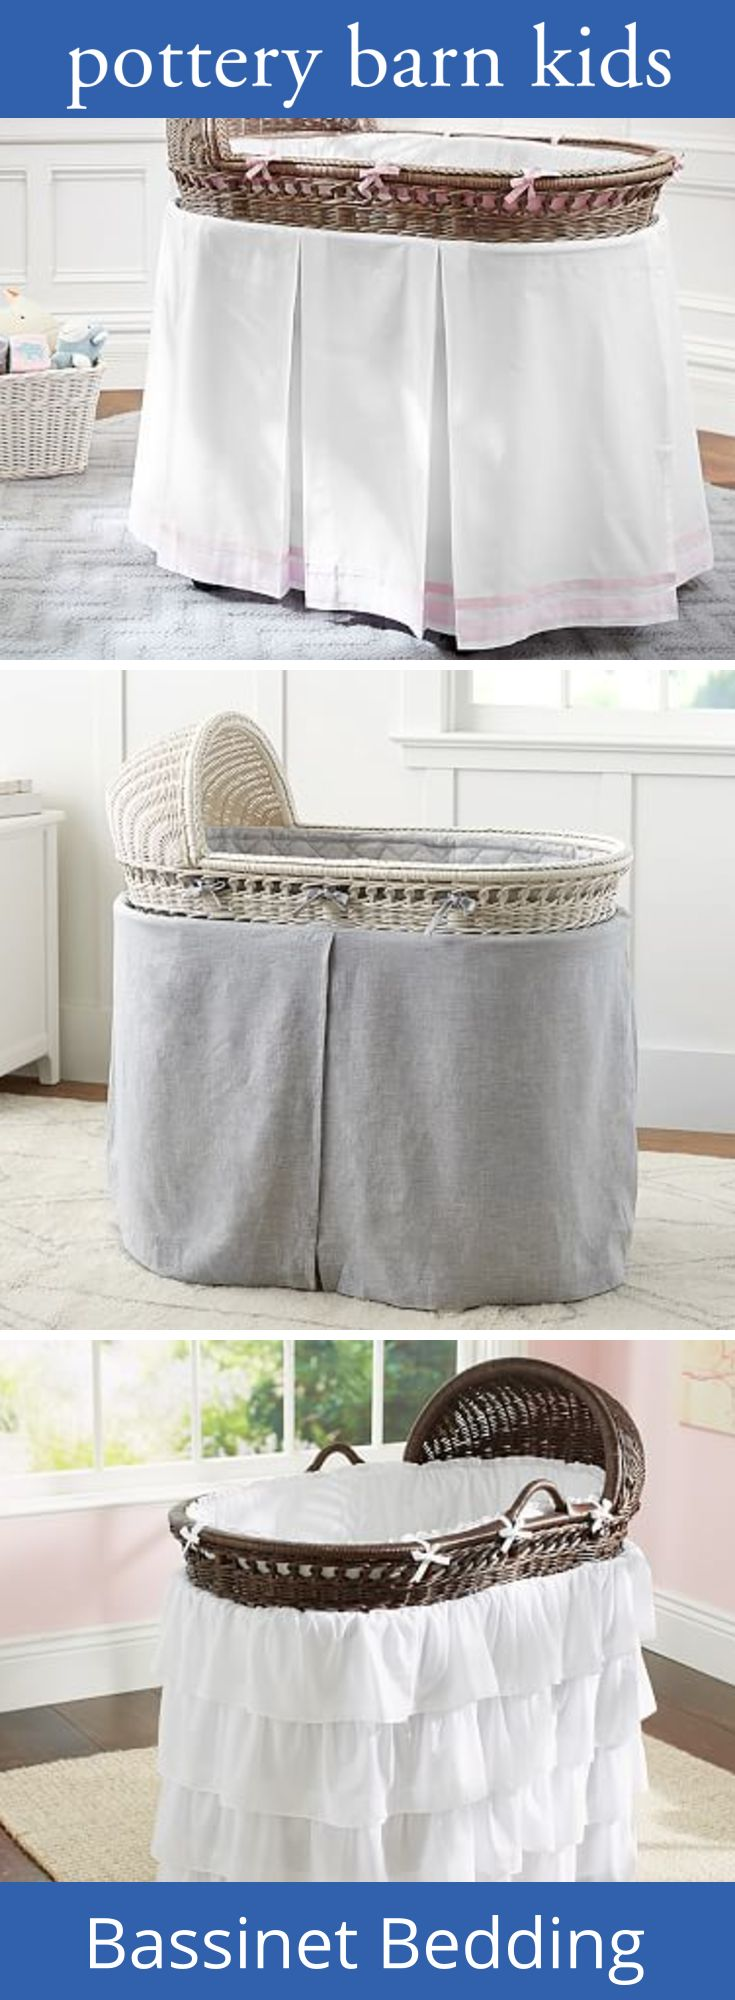 Baby cribs richmond va - Pottery Barn Kids Features Bassinet Bedding And Bassinet Sheets Find Cradle Bedding And Crib Sheets And Create A Cozy Baby Nursery